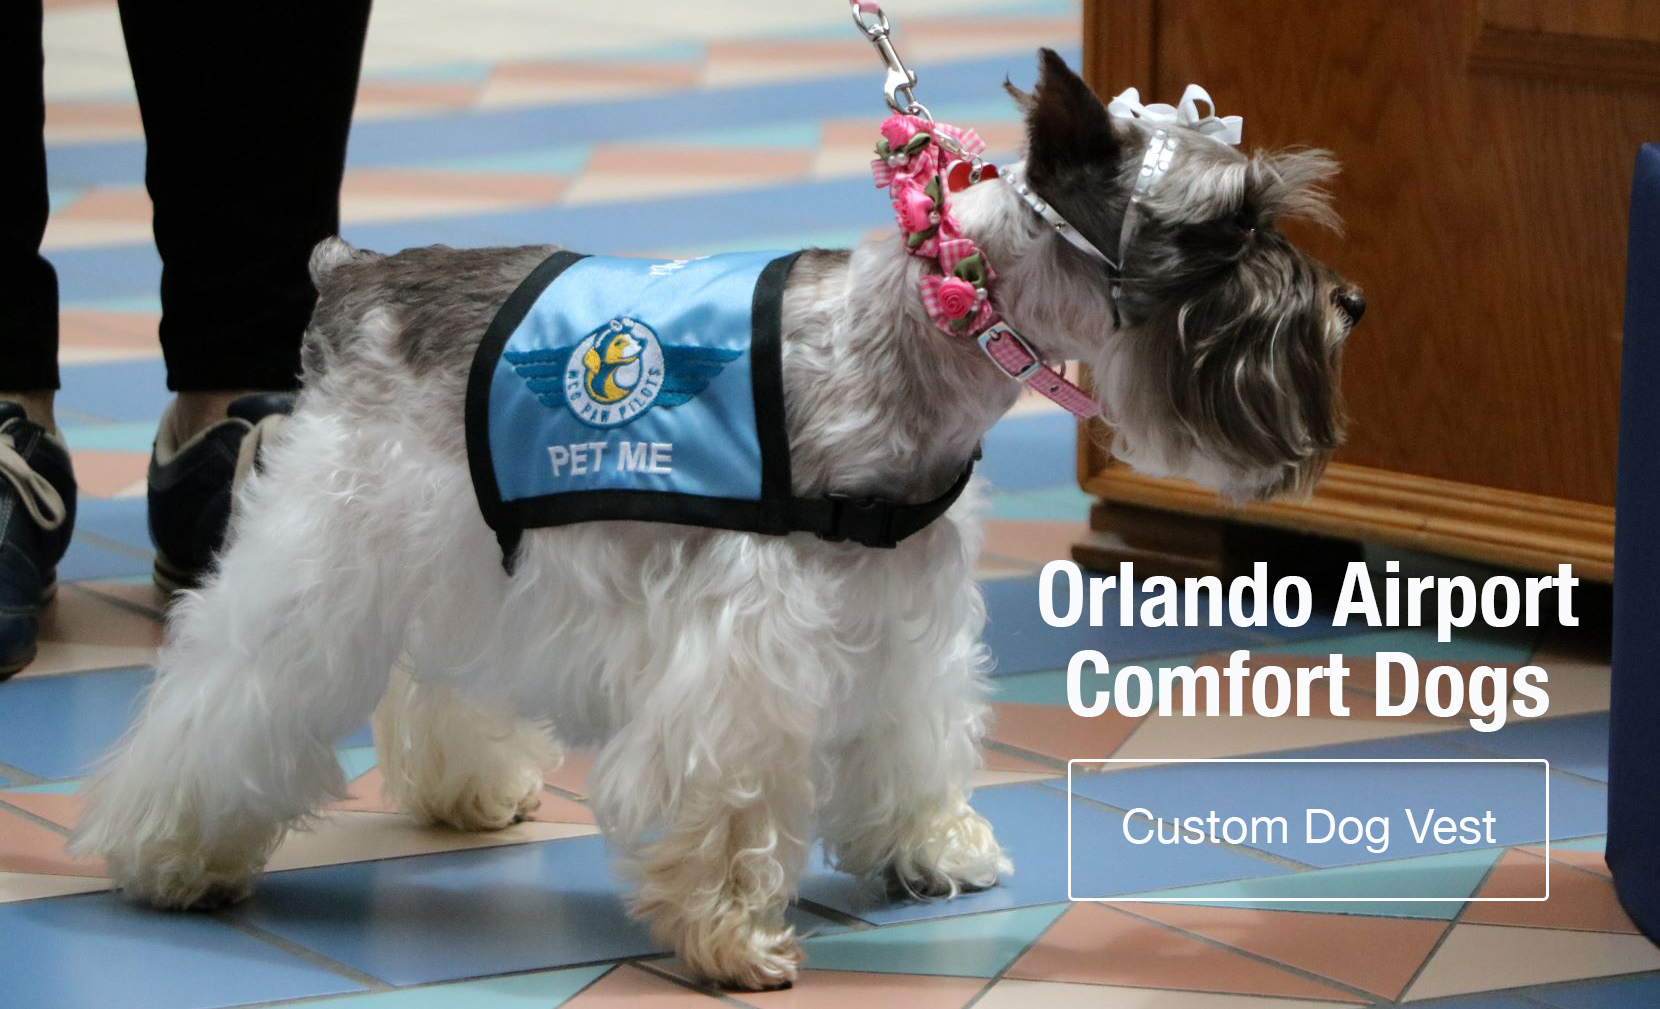 Assistance dog vest las vegas investment real estate agent